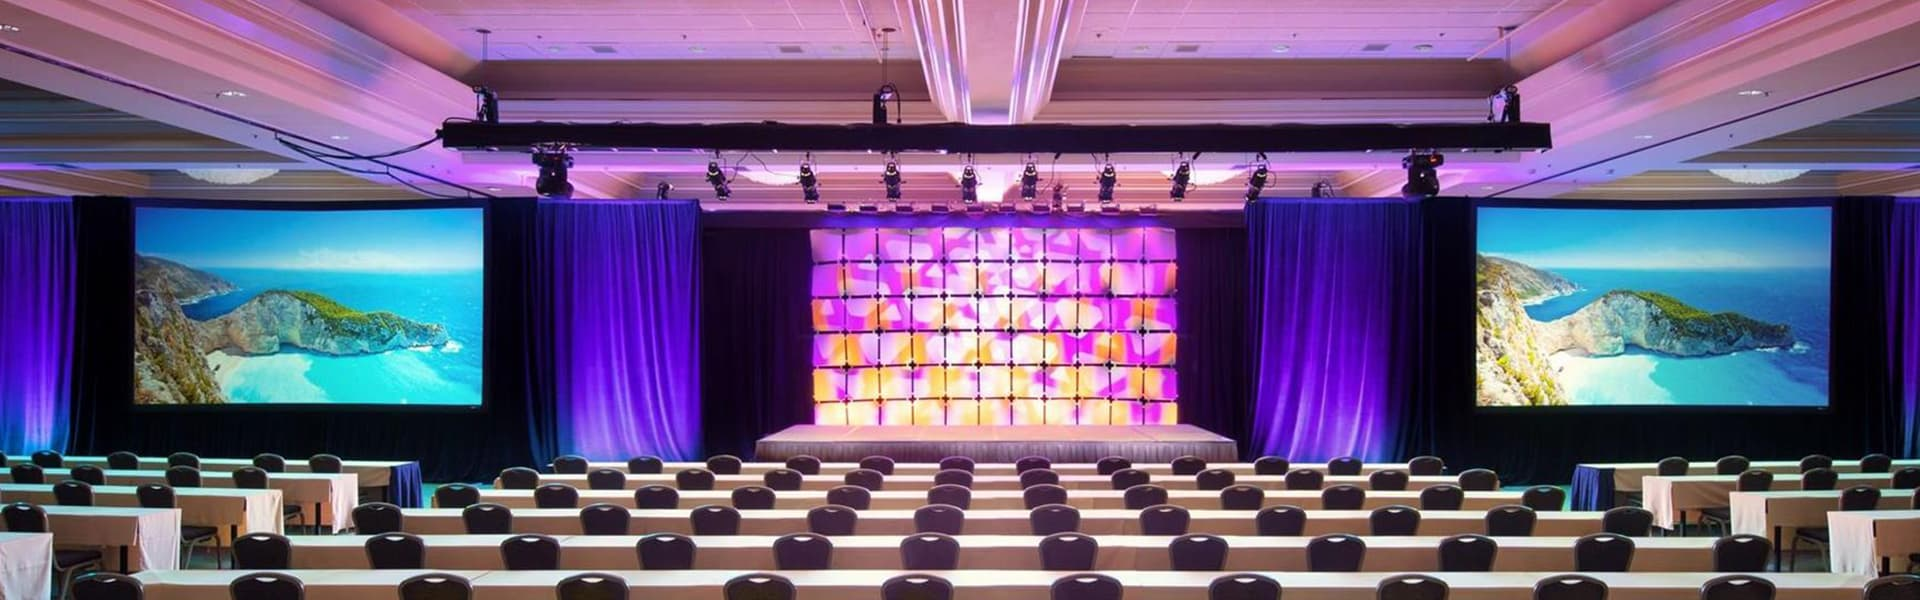 Audio Visual, Speakers, Line Array, Truss, Moving Heads, Martin Mac Aura, Staging, Lighting, JBL Vertec, Conference, Summit, AV, Toronto, Product Launch, AV Production, Audio Visual Production